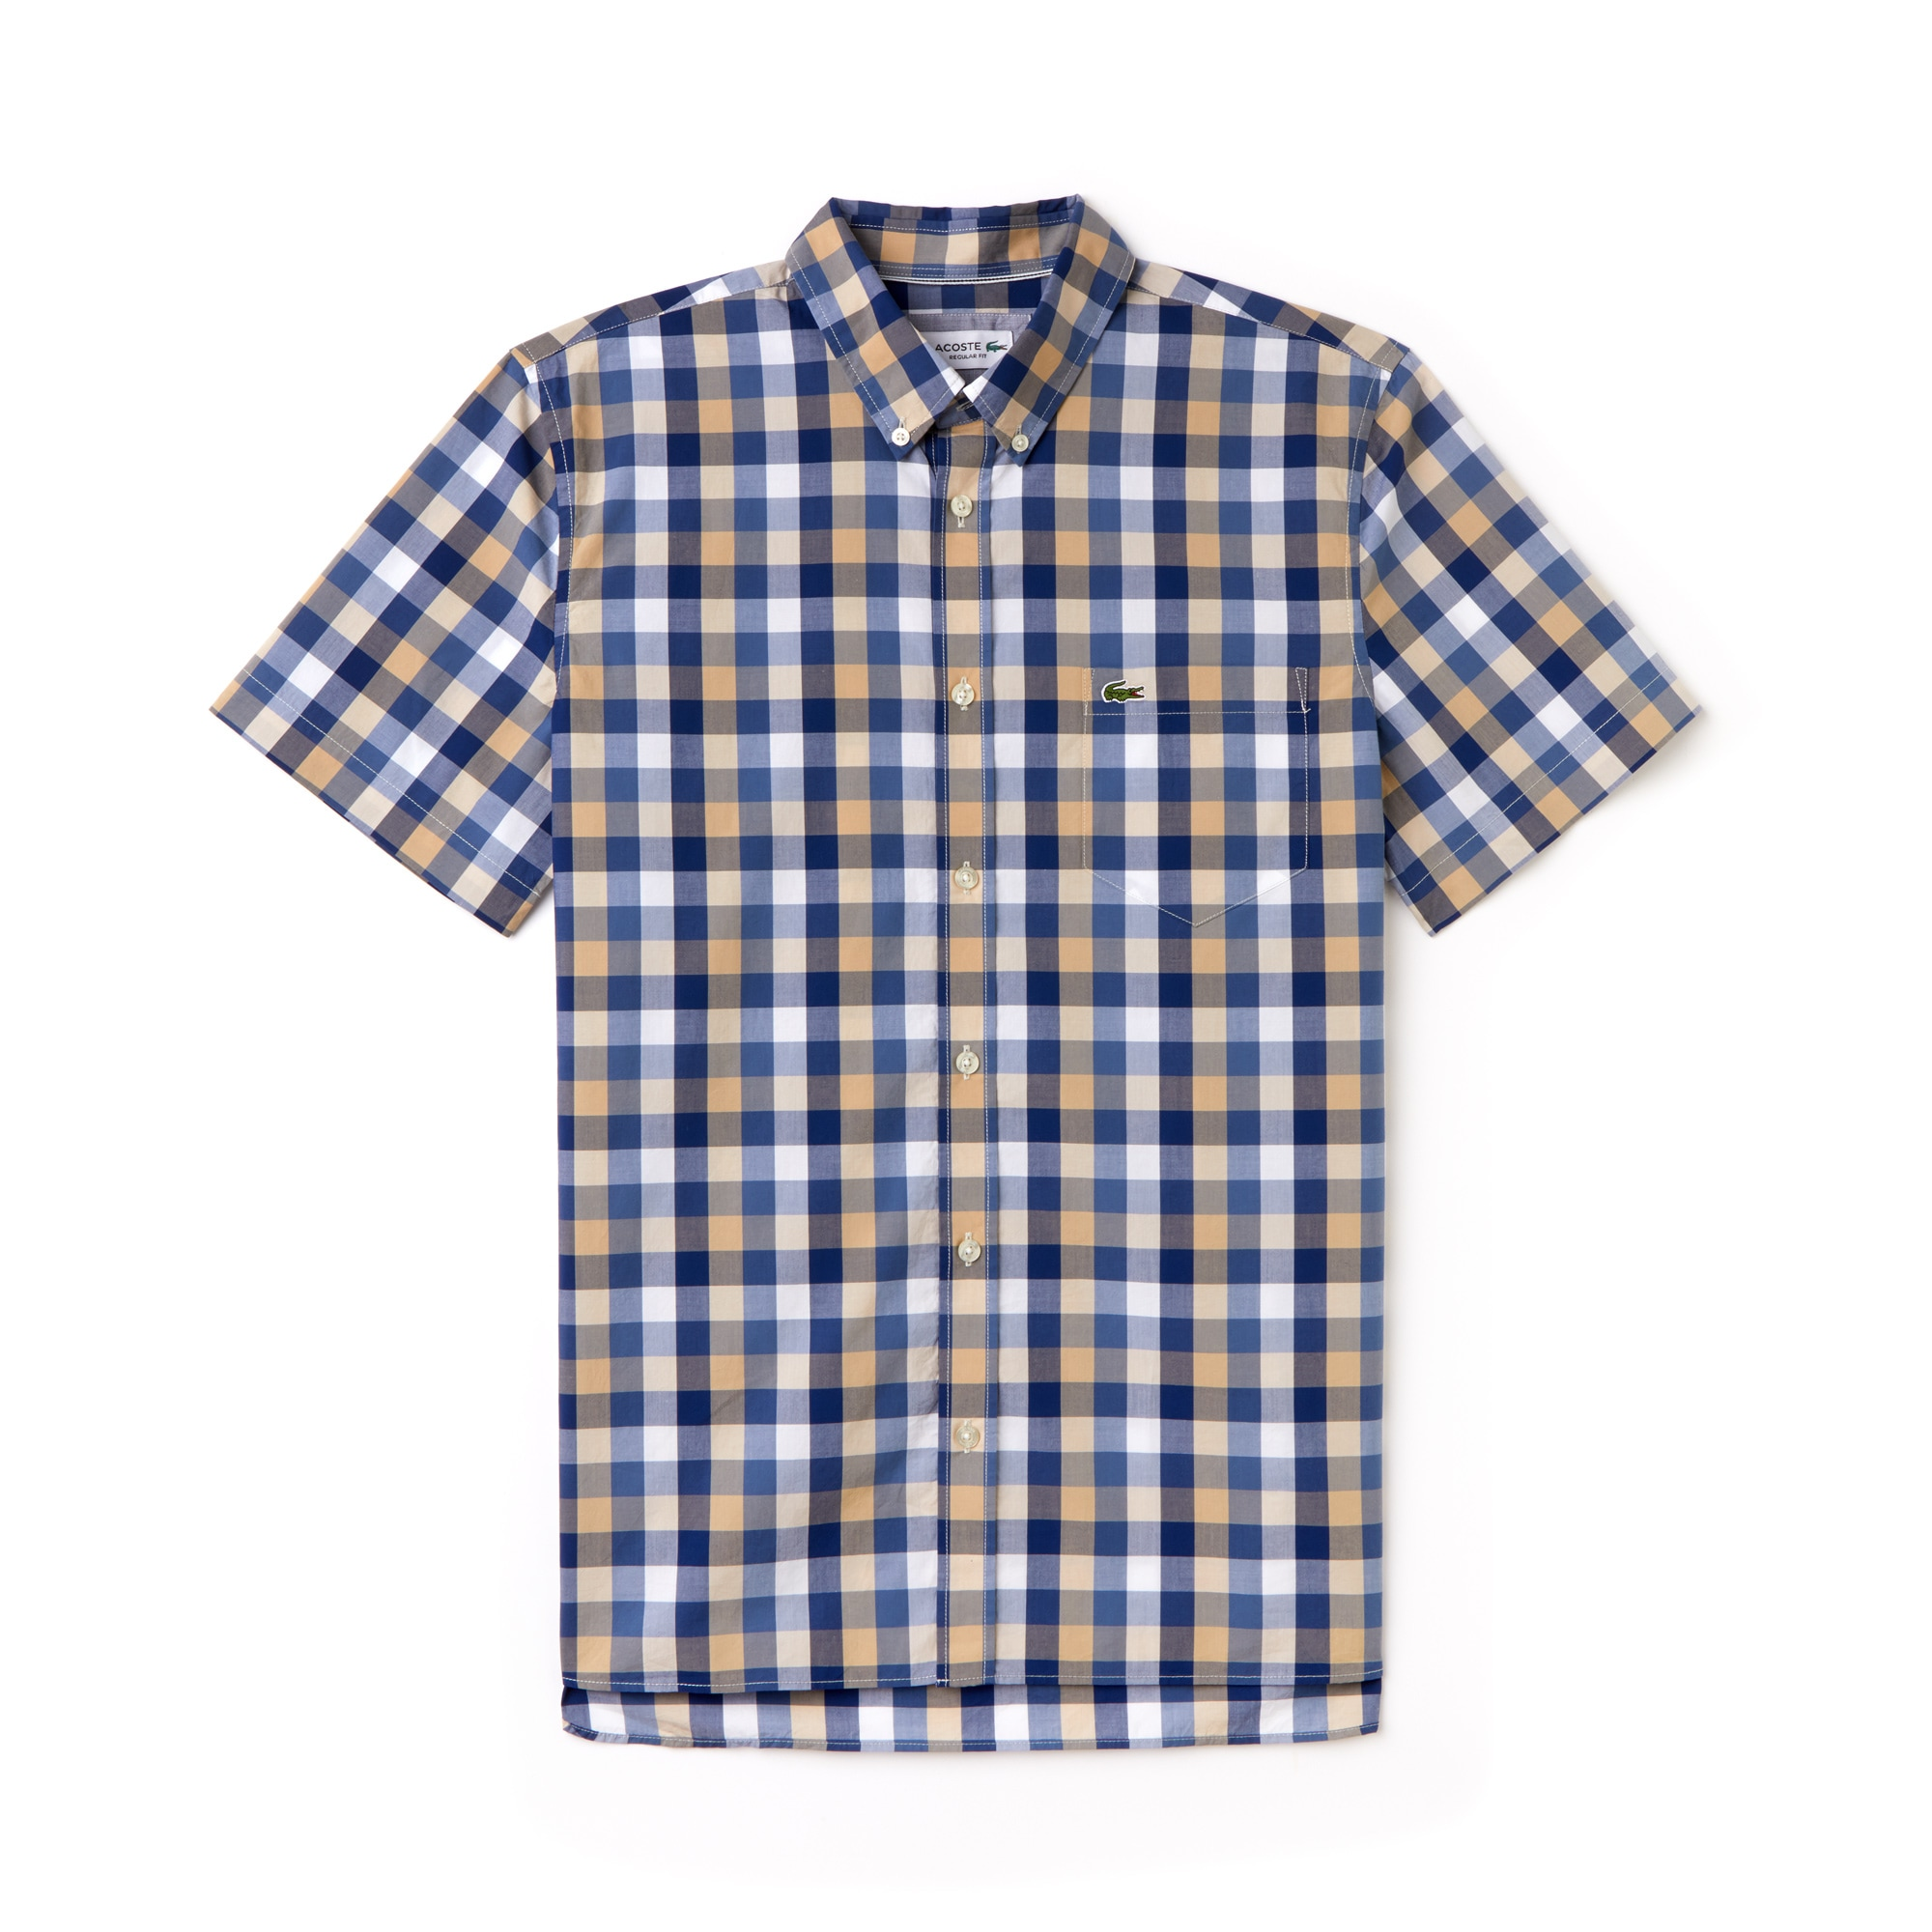 LACOSTE Men's Regular Fit Check Poplin Shirt